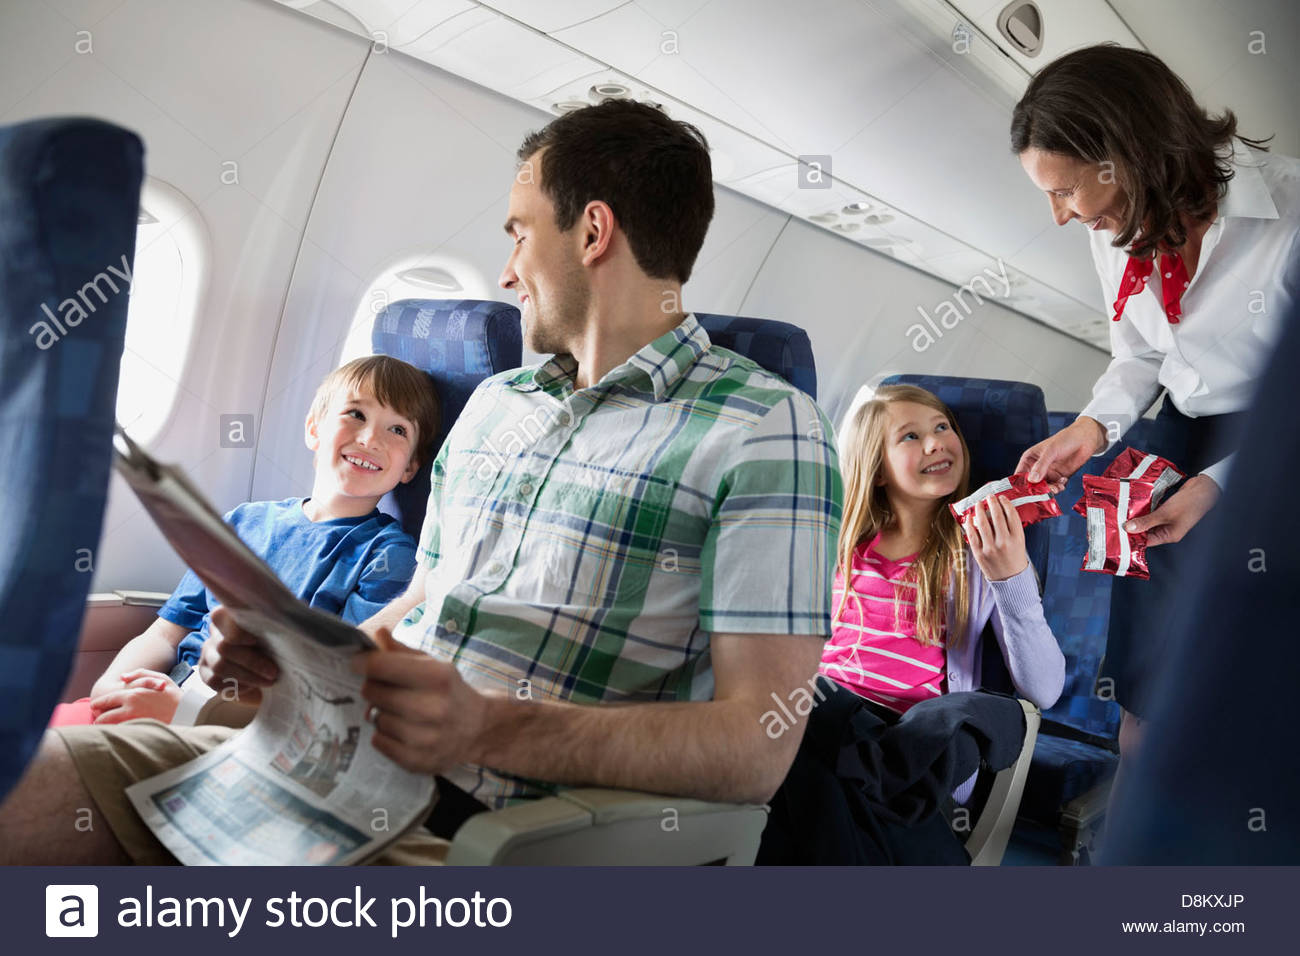 Flight attendant handing out snacks to family in airplane - Stock Image